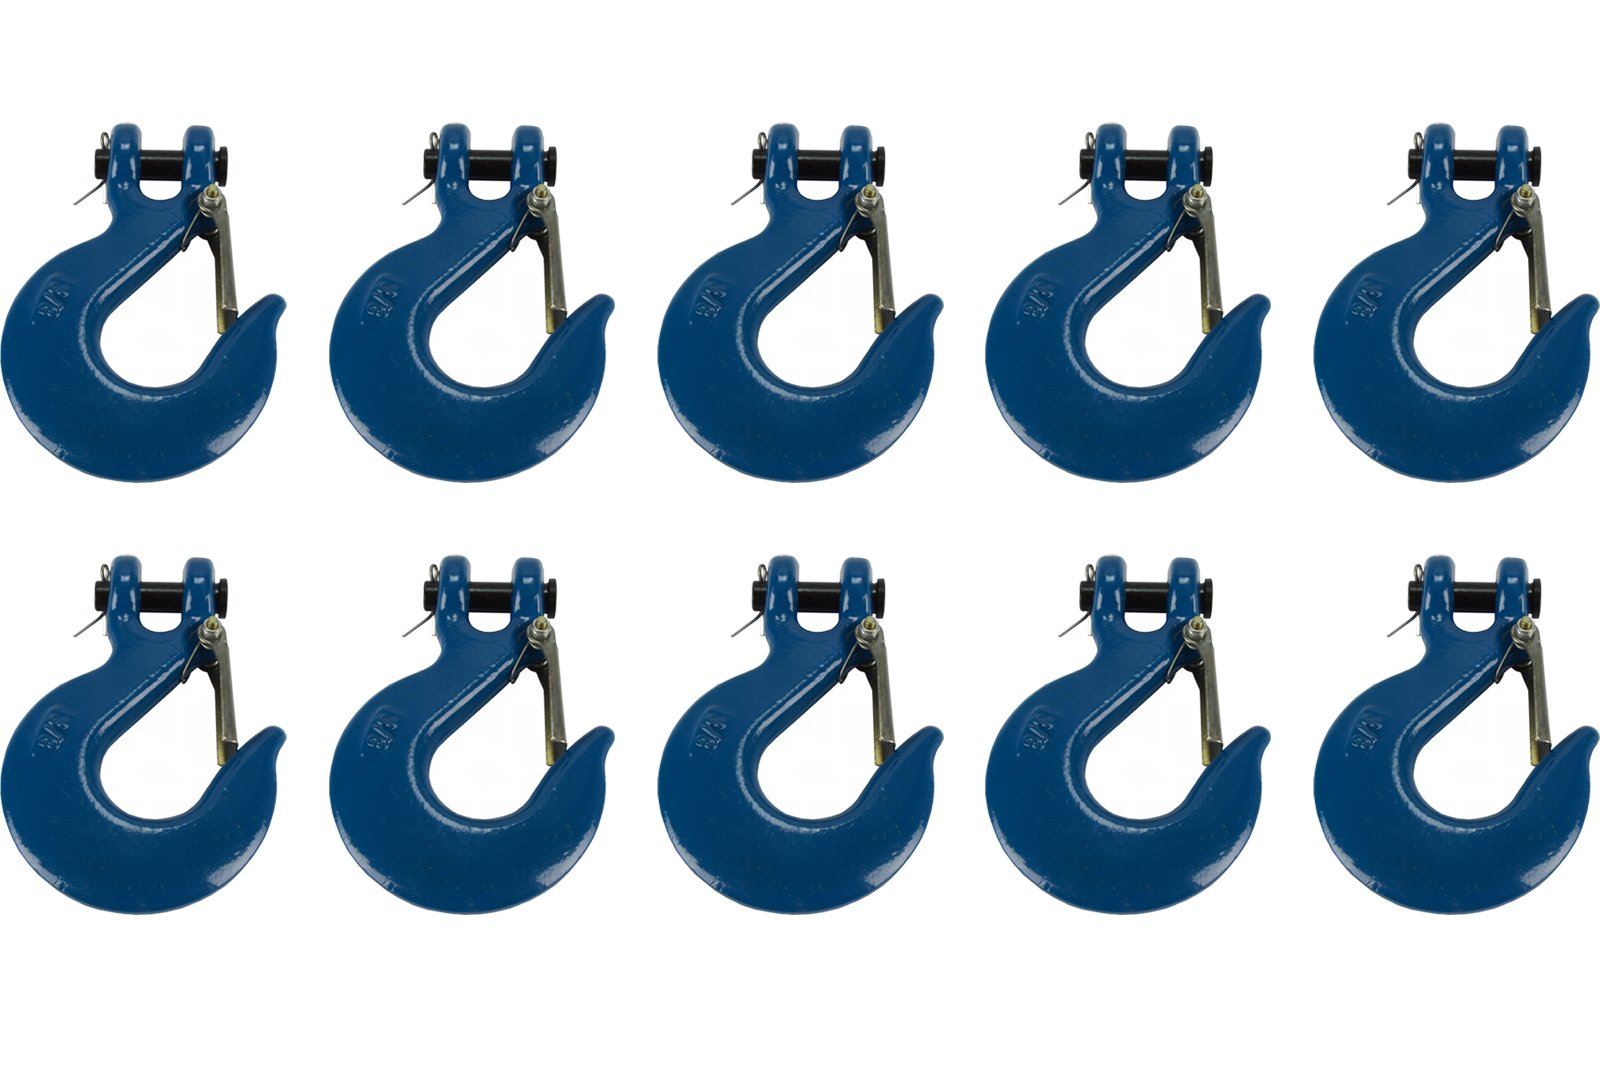 TEMCo 10 Lot 3/8'' Chain Slip Safety Latch Hook Clevis Rigging Tow Winch Trailer Grade 70